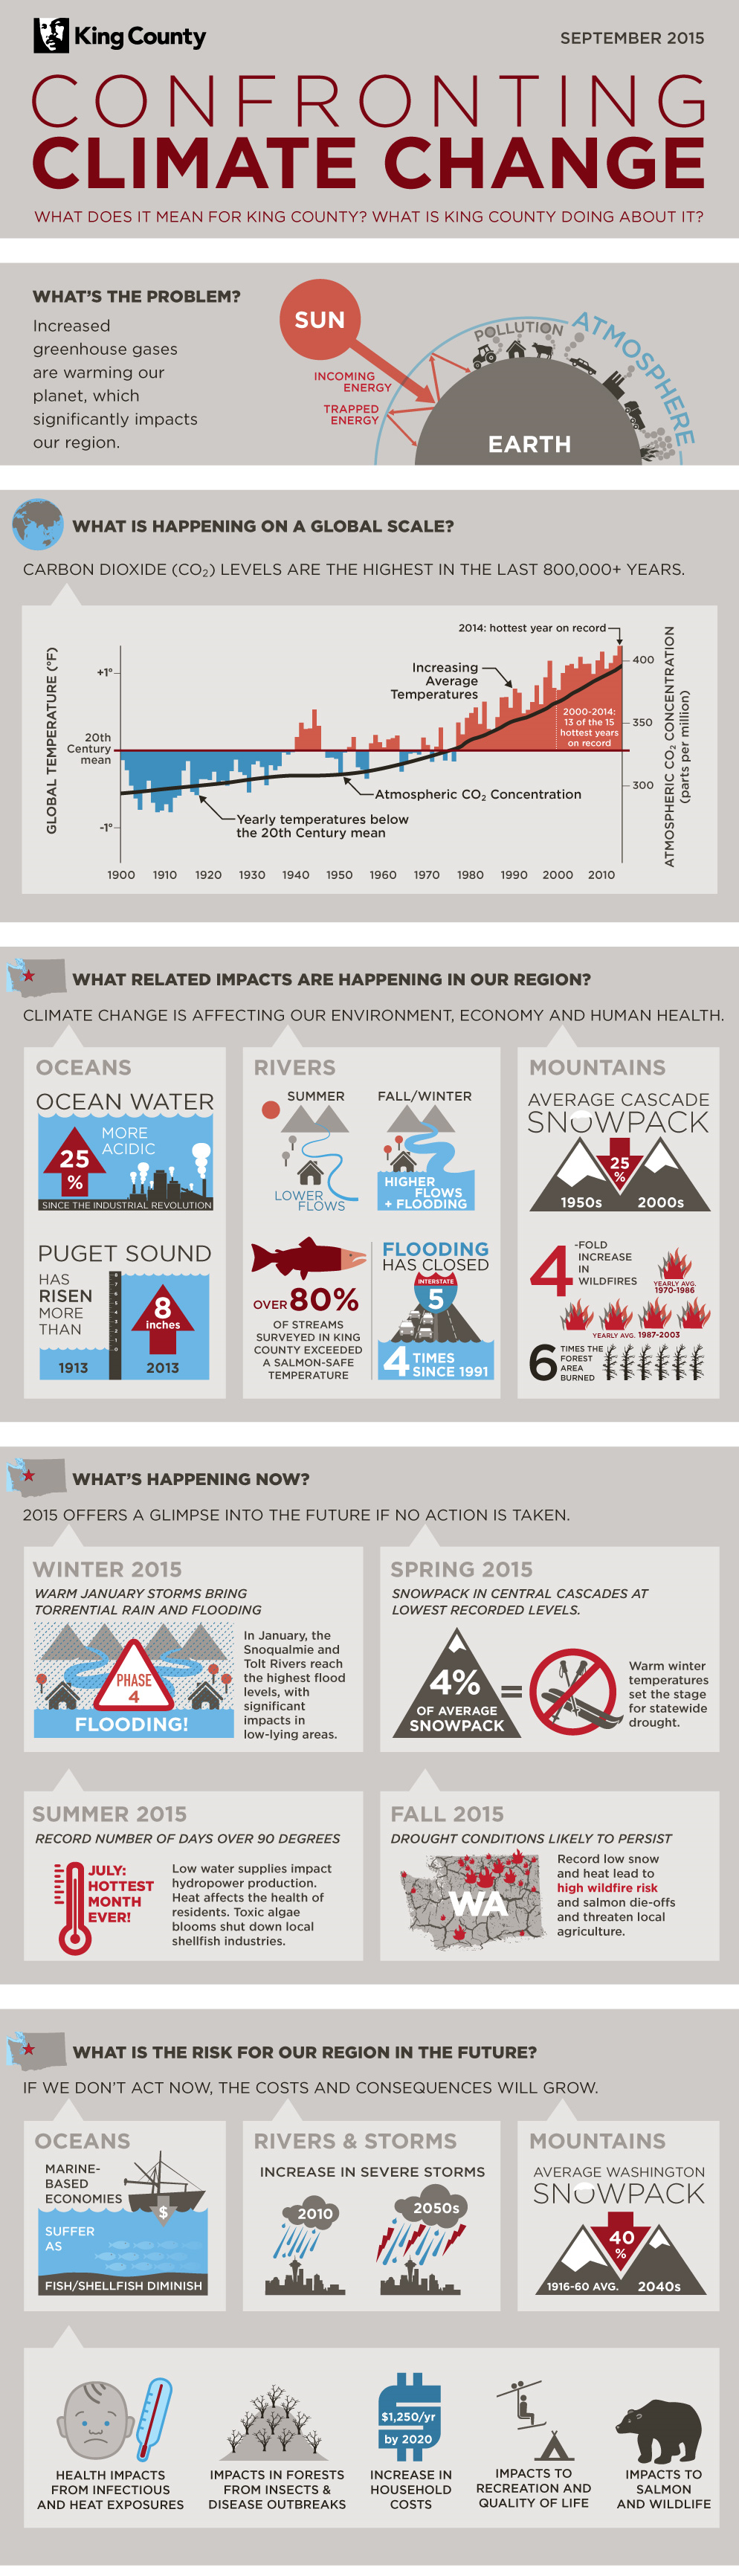 Climate_Change_Infographic_King_County